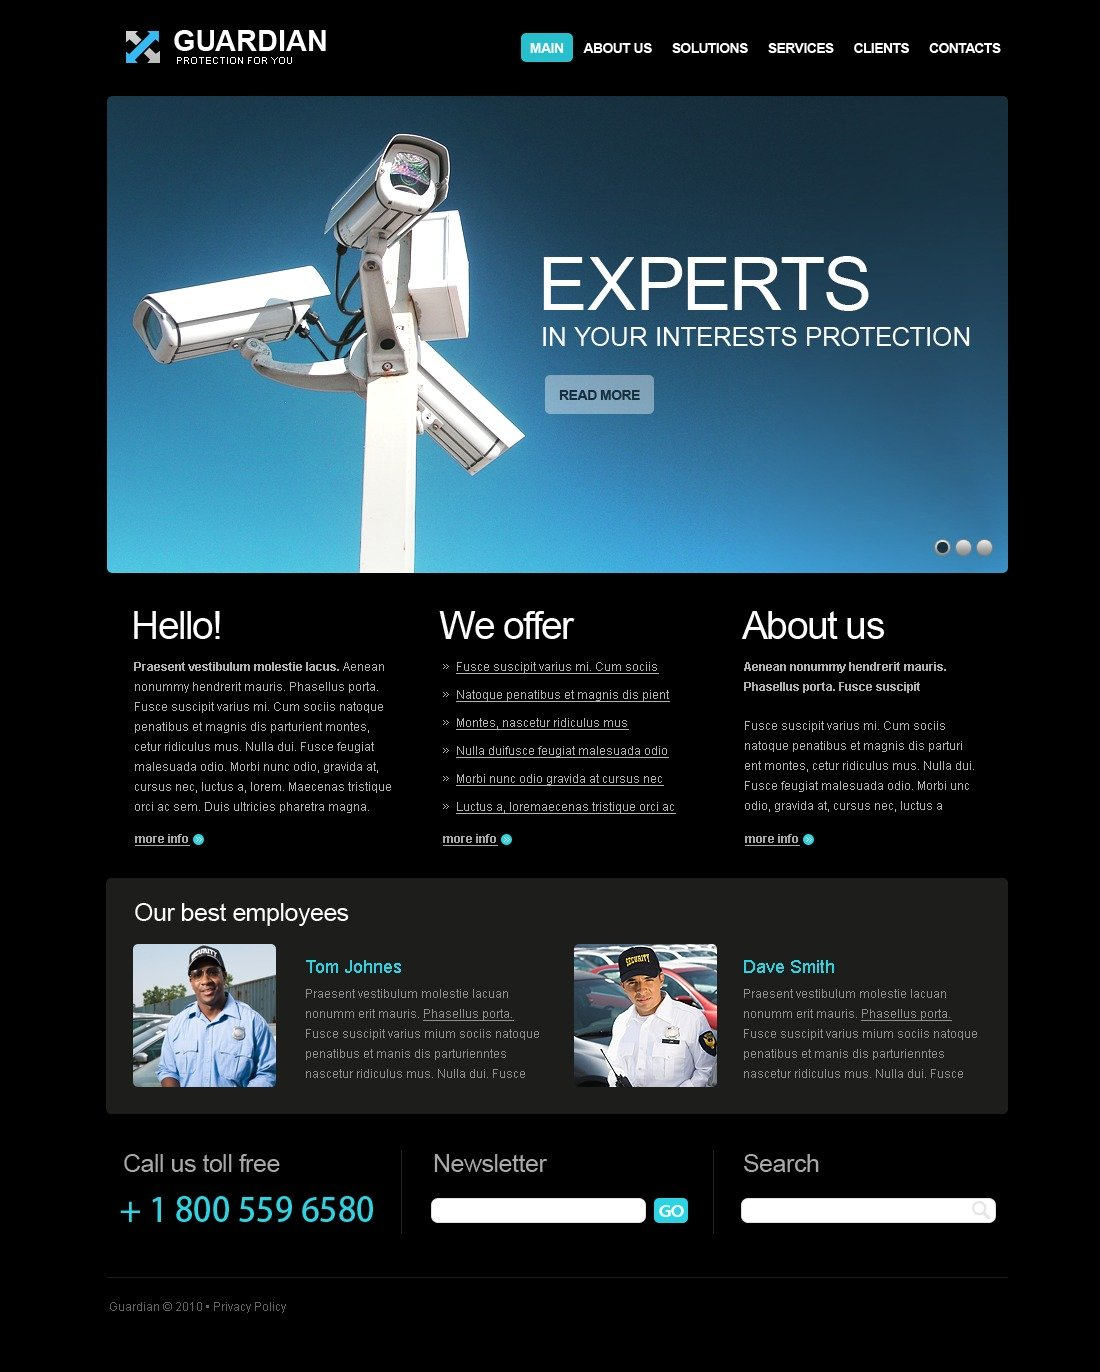 The Guardian Company PSD Design 54296, one of the best PSD templates of its kind (security, flash 8, wide), also known as guardian company PSD template, security PSD template, services PSD template, secure PSD template, safe PSD template, safety PSD template, safeguard PSD template, protection system PSD template, information PSD template, data PSD template, service solution PSD template, business PSD template, home and related with guardian company, security, services, secure, safe, safety, safeguard, protection system, information, data, service solution, business, home, etc.